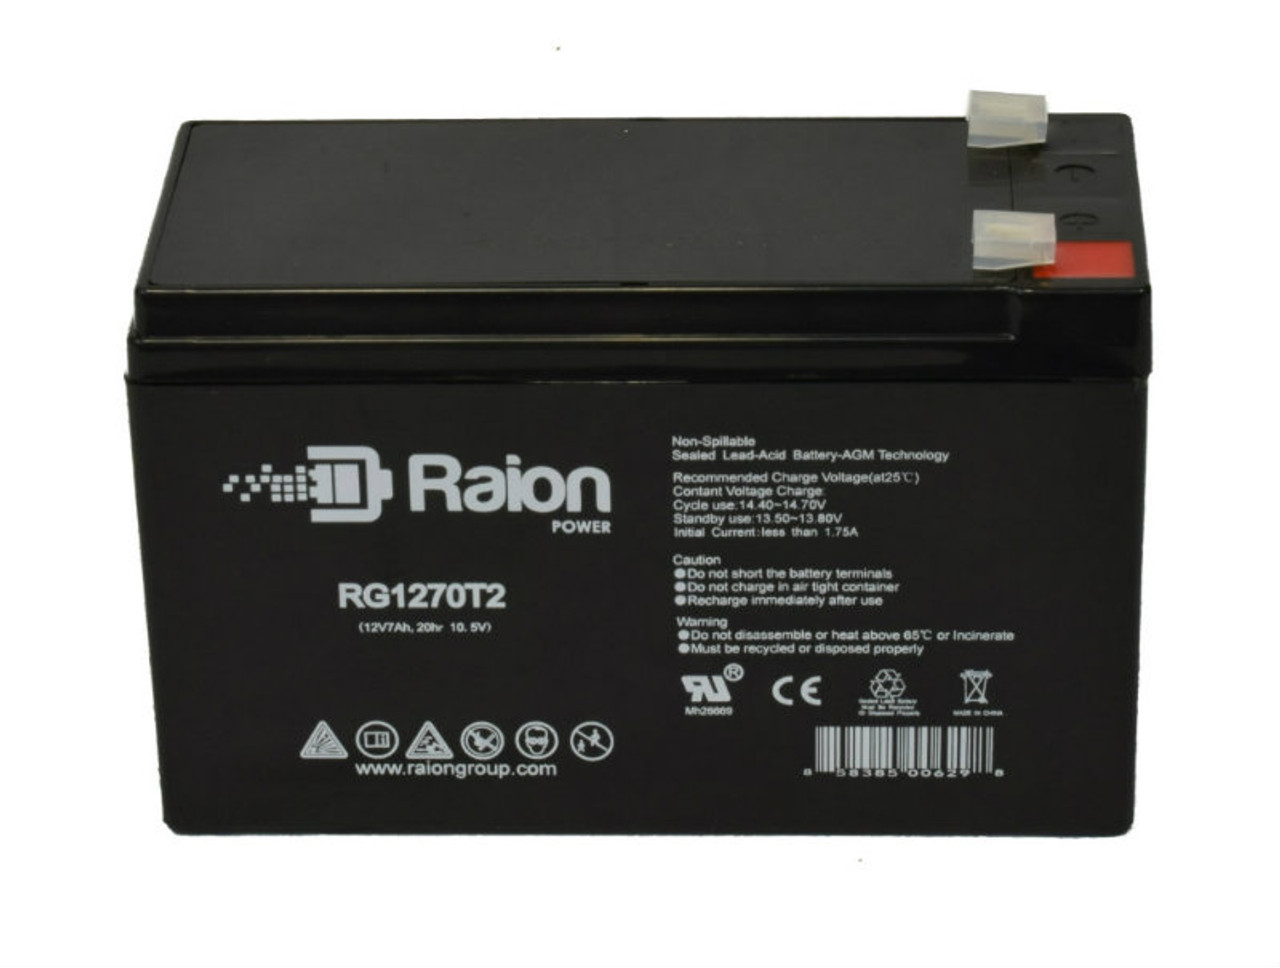 Raion Power 12V 7Ah SLA Battery With T1 Terminals For Zeus Battery PC7-12F1